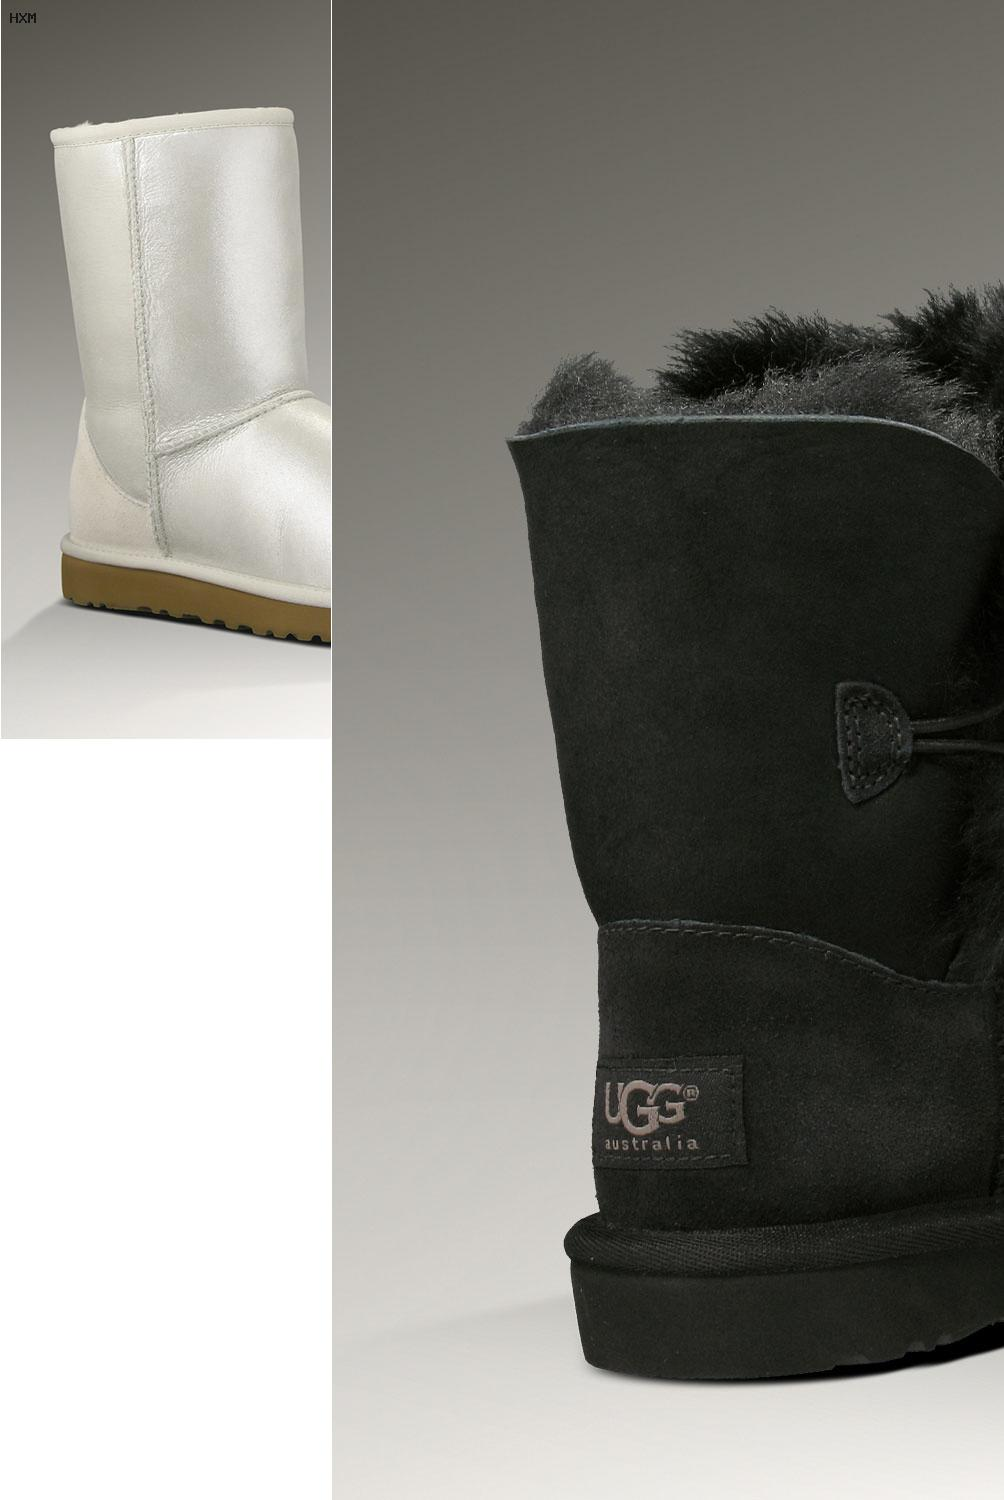 0478c0afb0 ugg boots pailletten silber